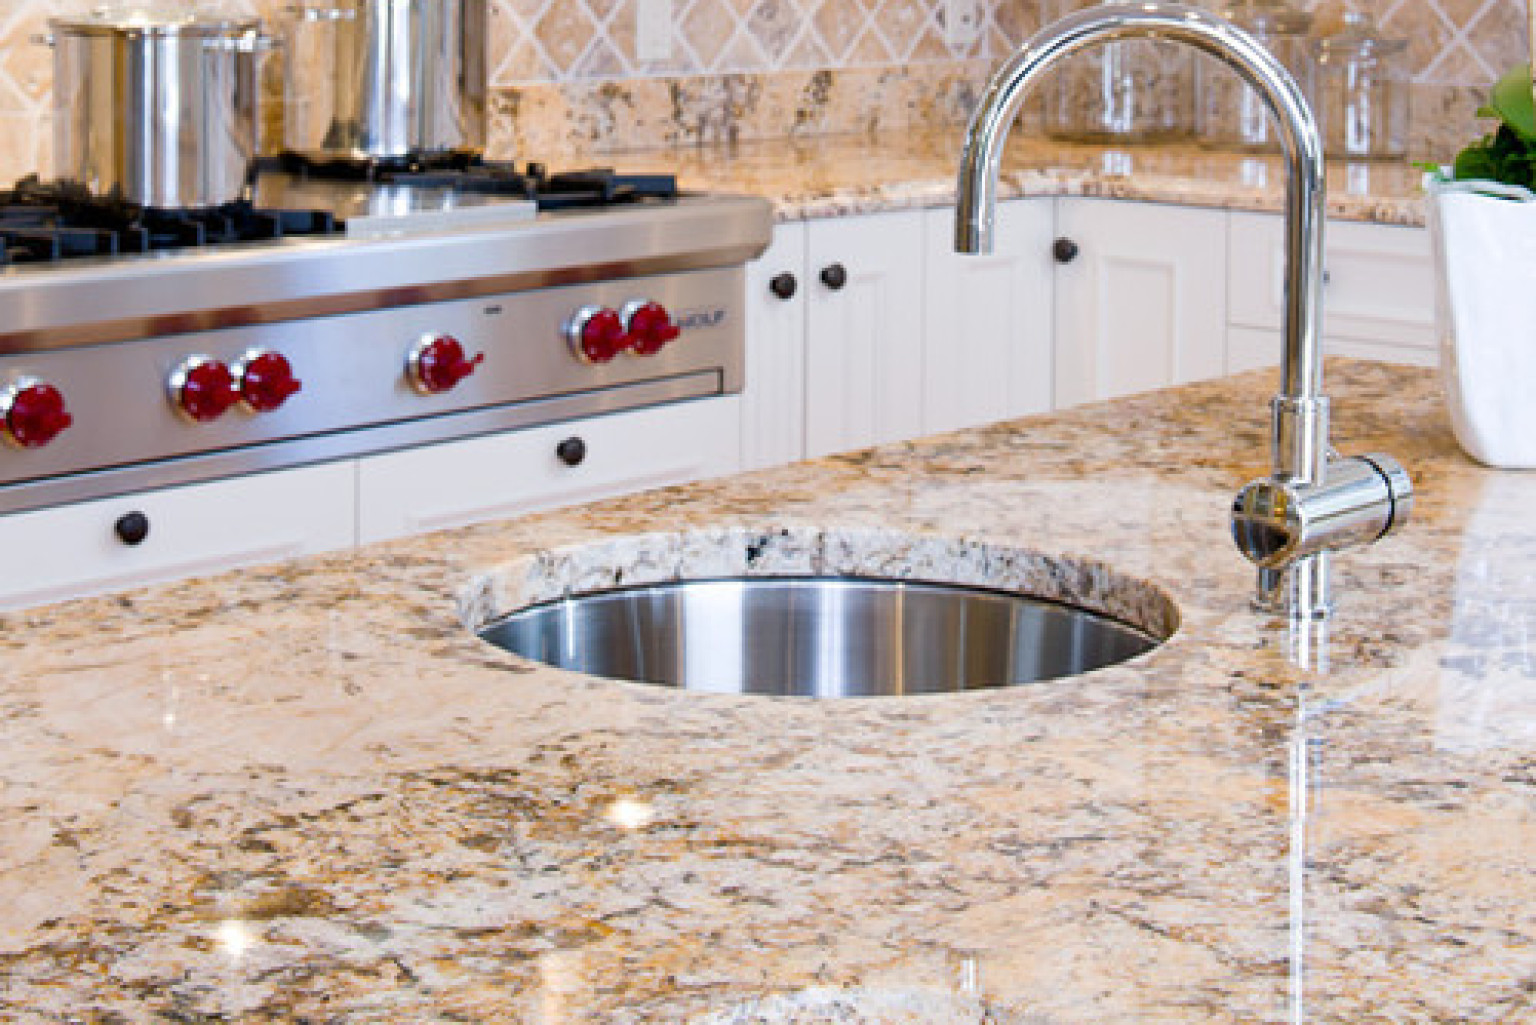 kitchen countertops buying guide n kitchen countertop prices Kitchen Countertops Buying Guide The Ins And Outs Of The Best Options On The Market PHOTOS HuffPost